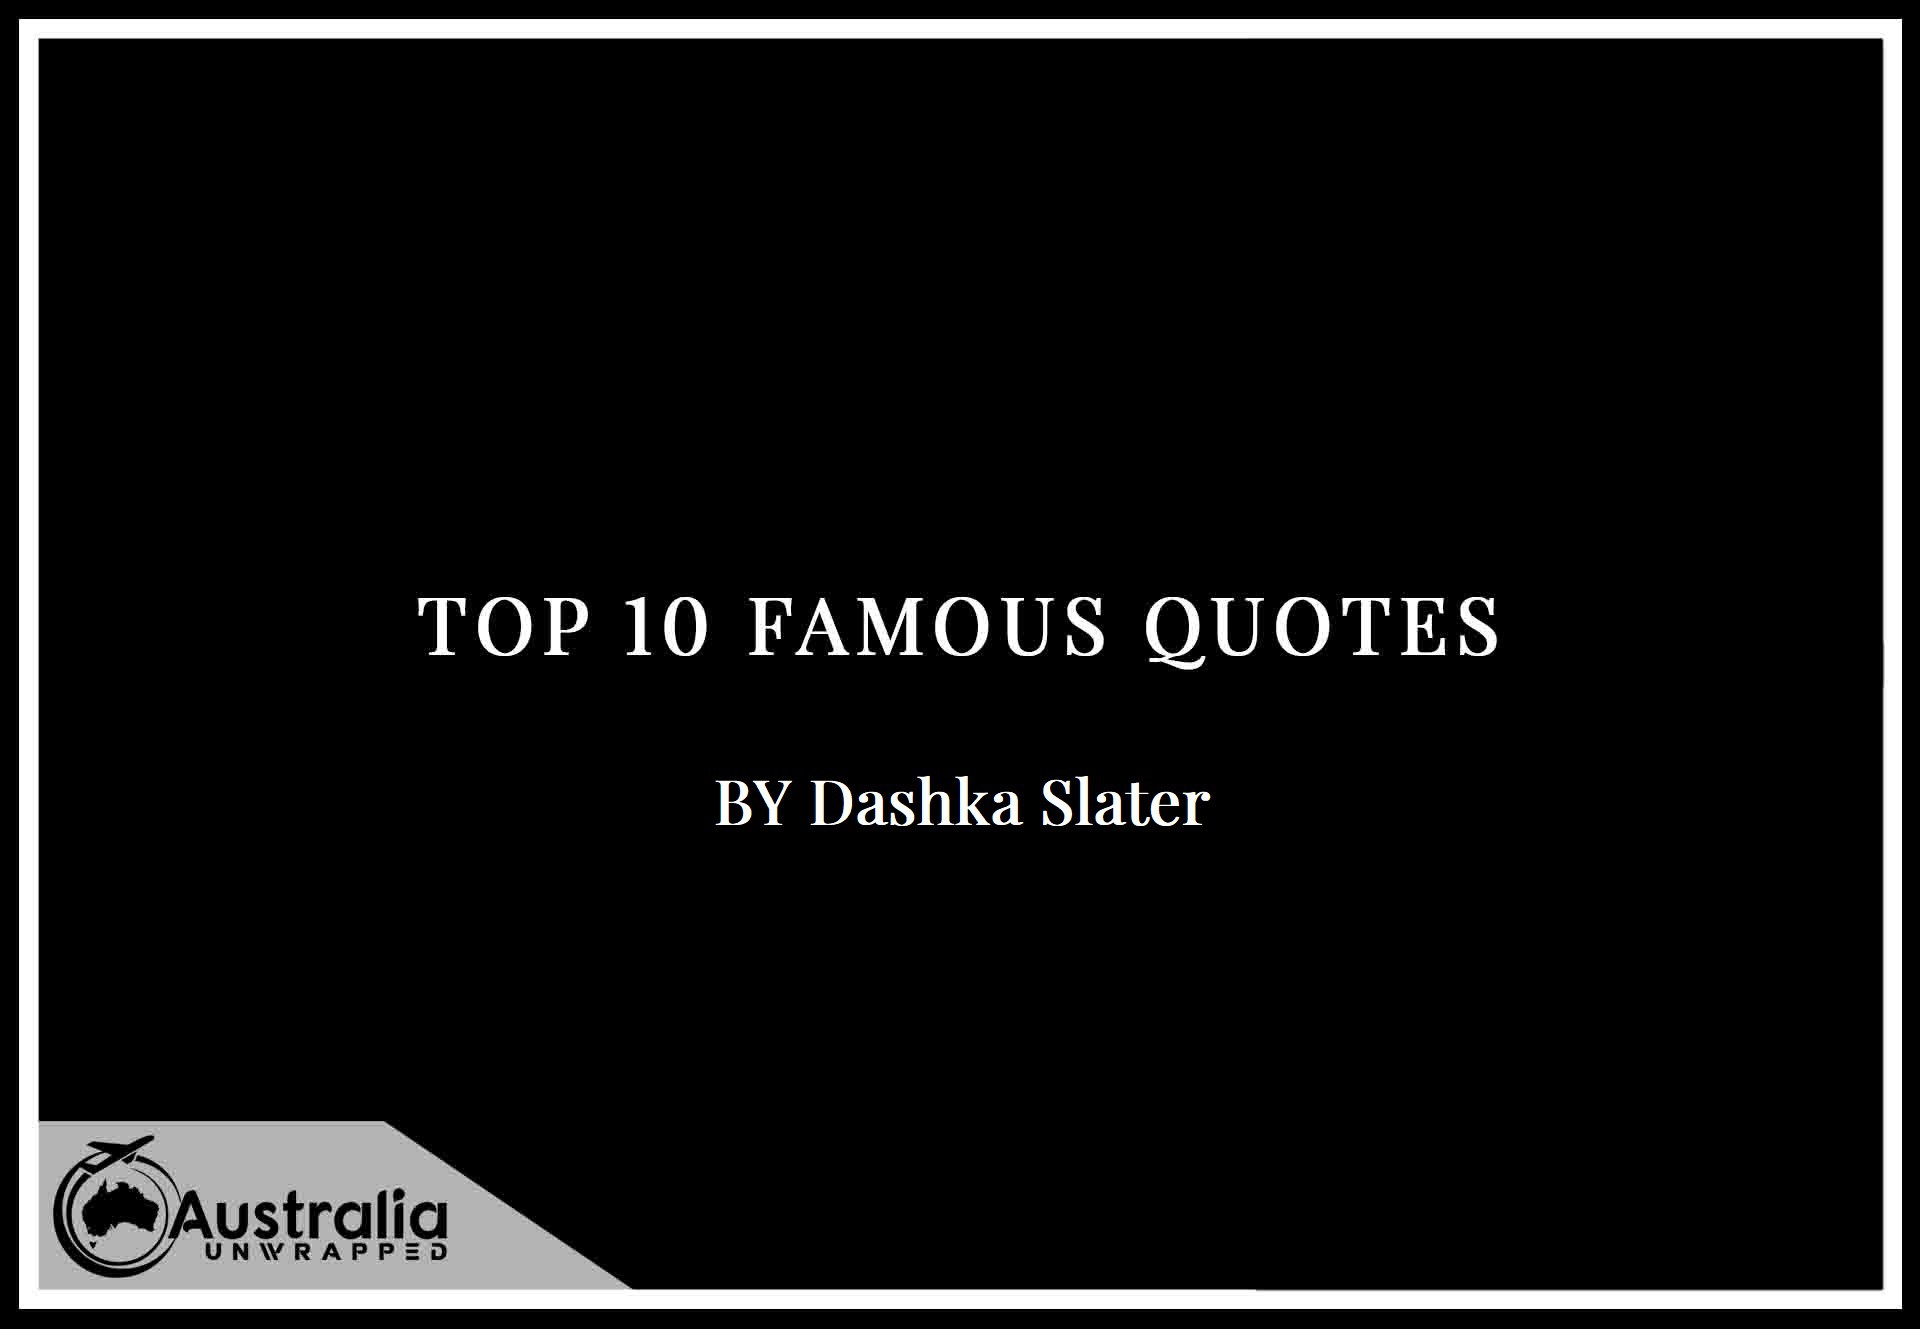 Top 10 Famous Quotes by Author Dashka Slater